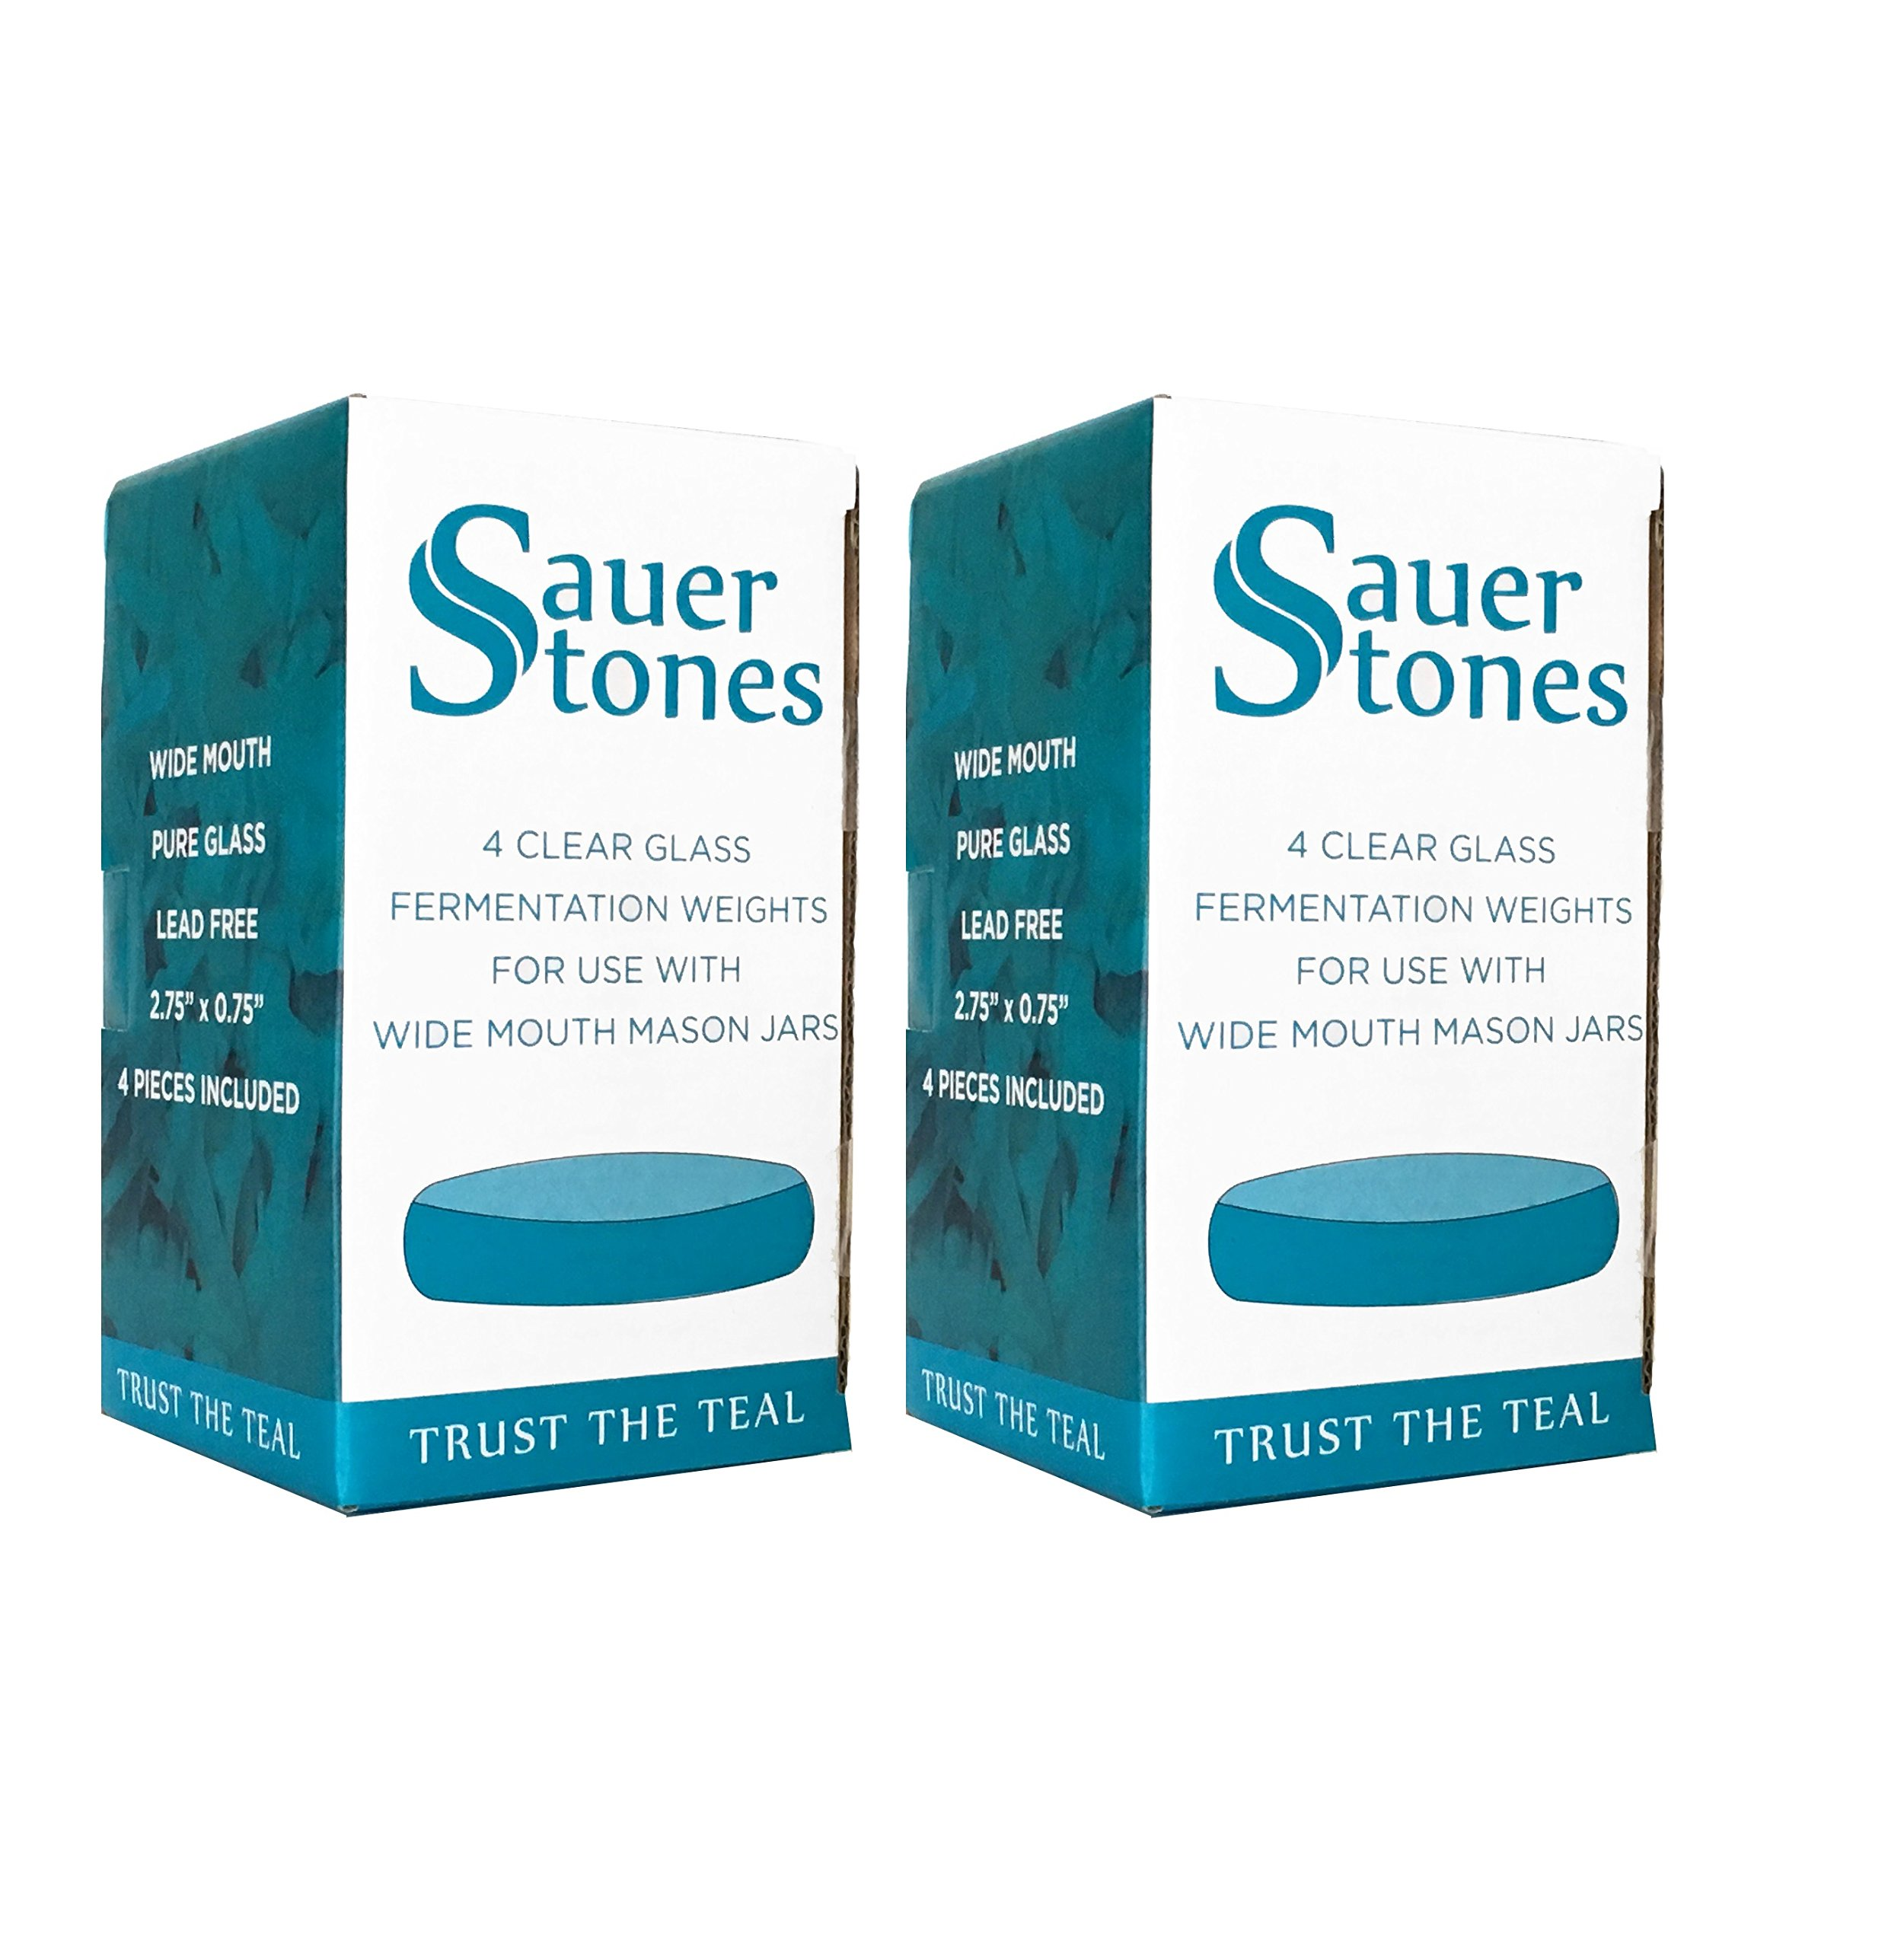 Sauer Stones - Large Glass Fermentation Weights for Mason Jar Fermentation, Preservation and Pickling - Fits ANY WIDE MOUTH MASON JAR - 8 Pack